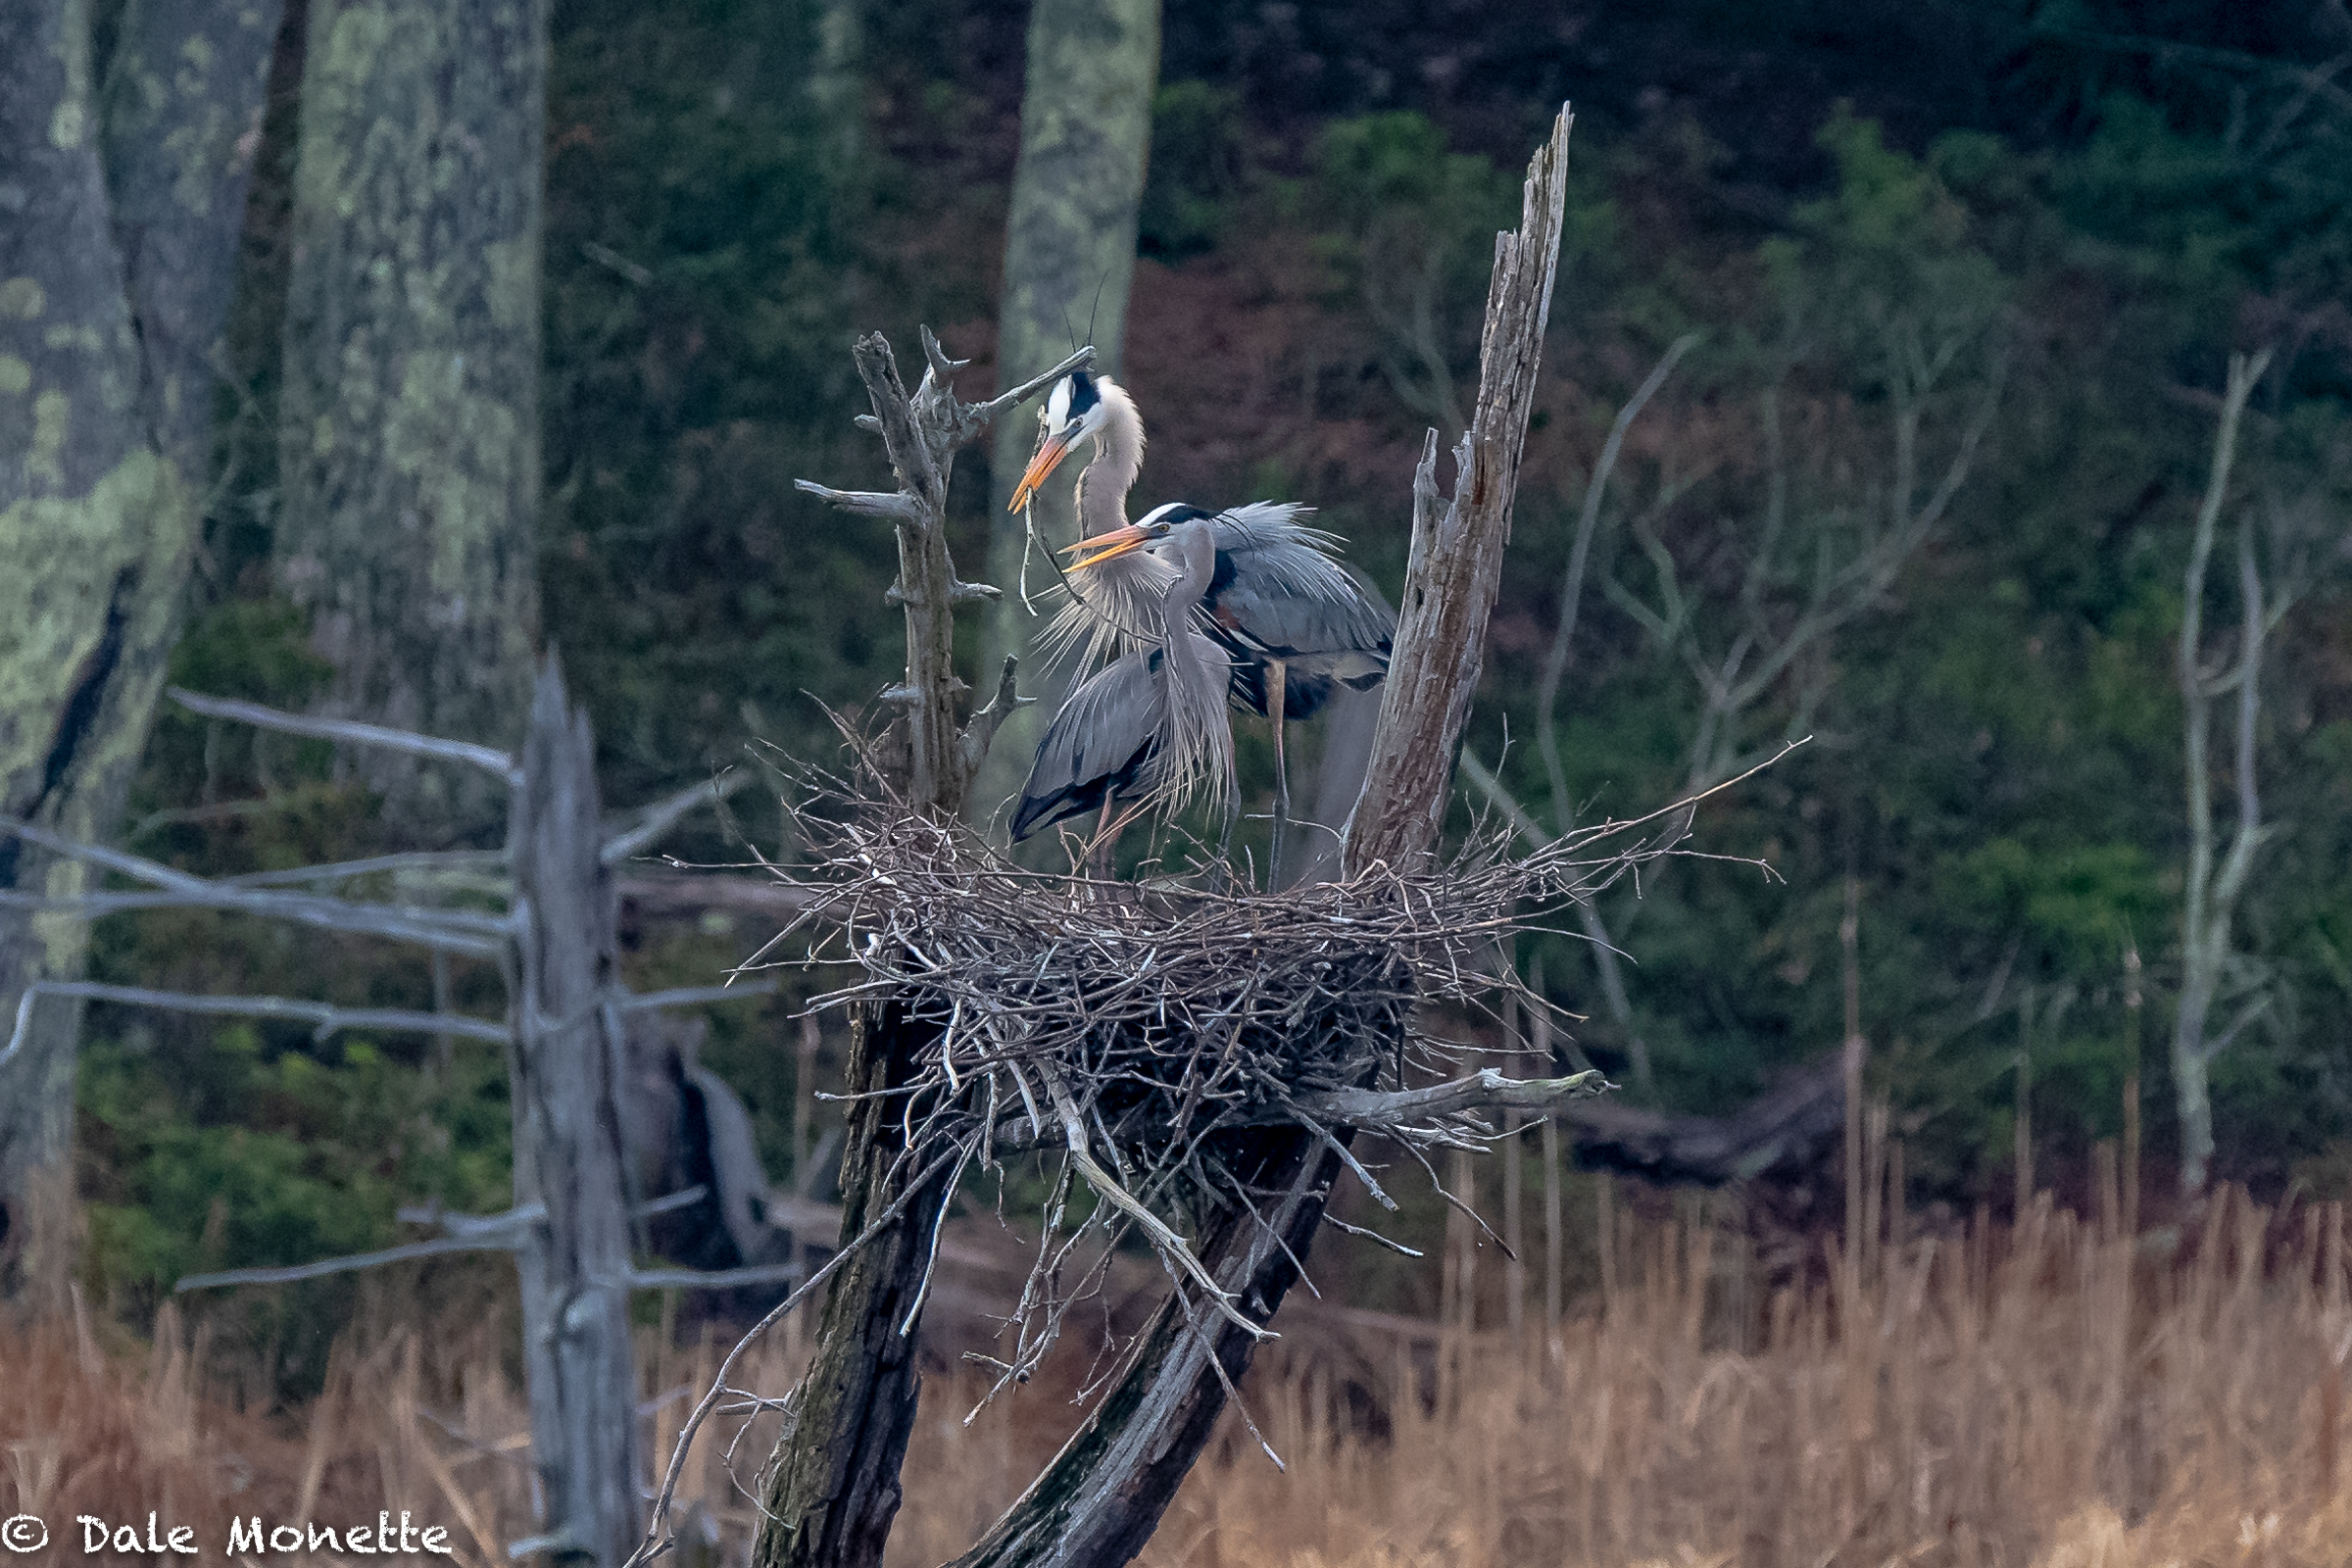 This mated pair of great blue herons spent most of the morning repairing their nest from winters damage. They mate for life and will also use the same nest year after year or until it blows down.